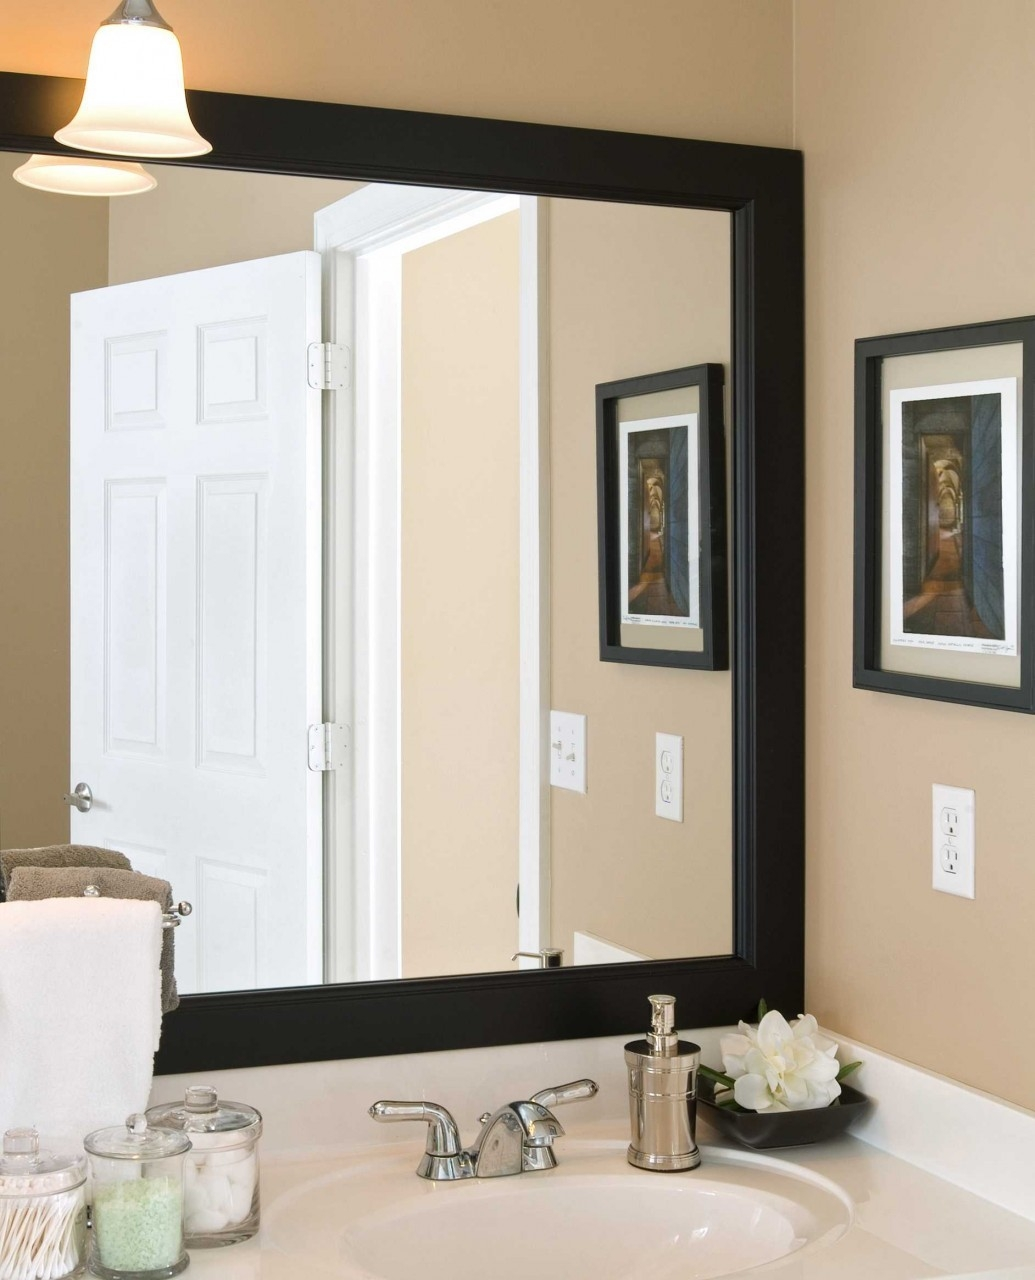 Large Bathroom Mirror With Black Frame